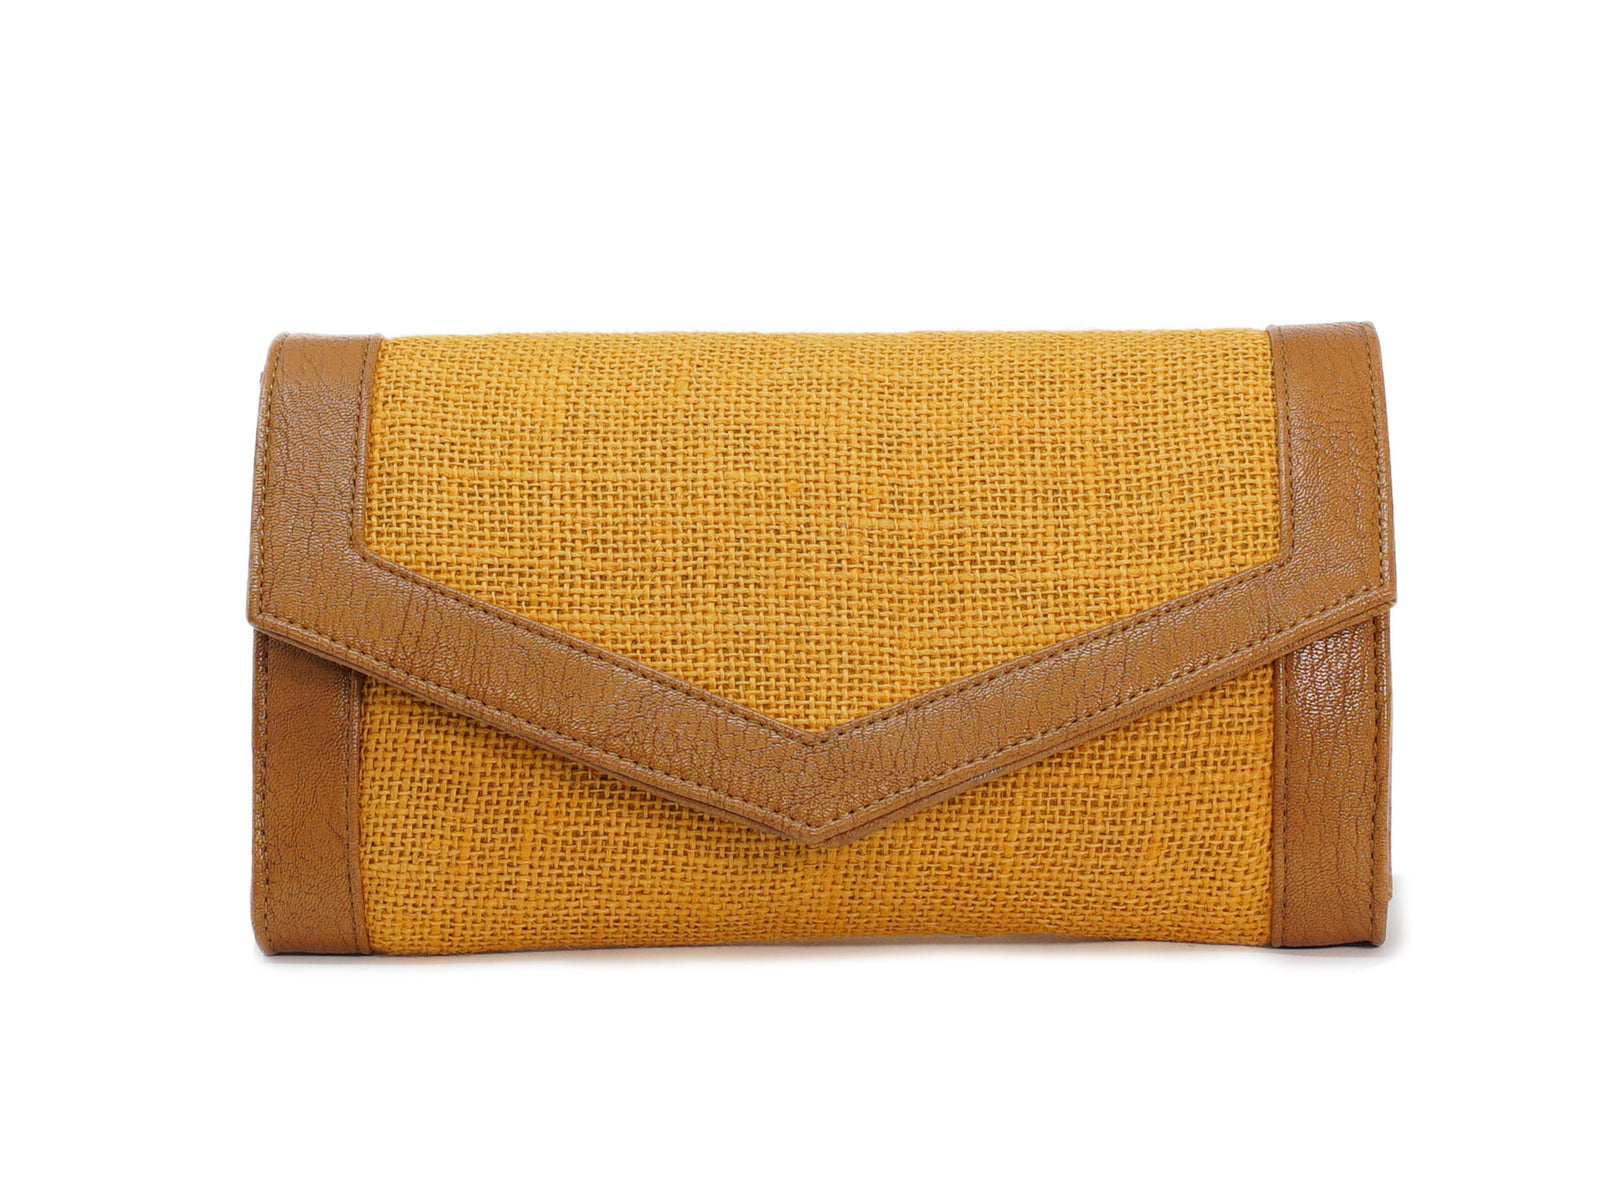 Bessa Envelope Clutch